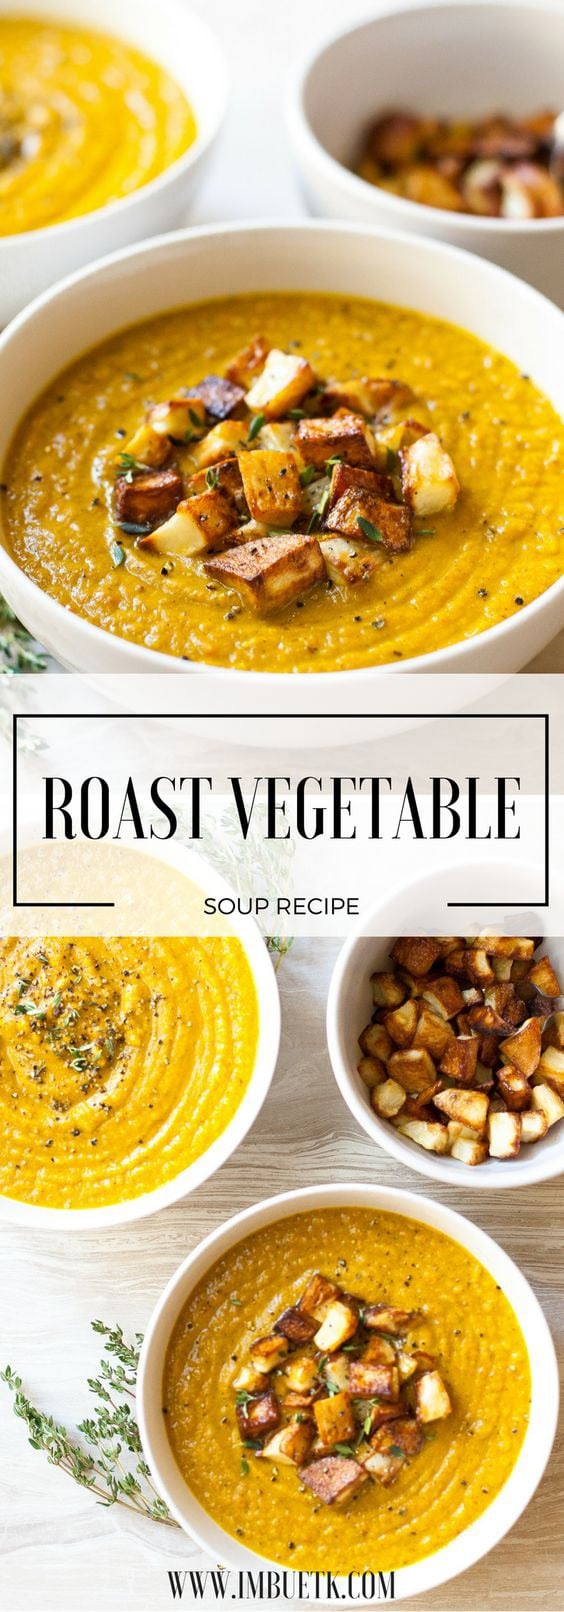 turmeric roast vegetable soup